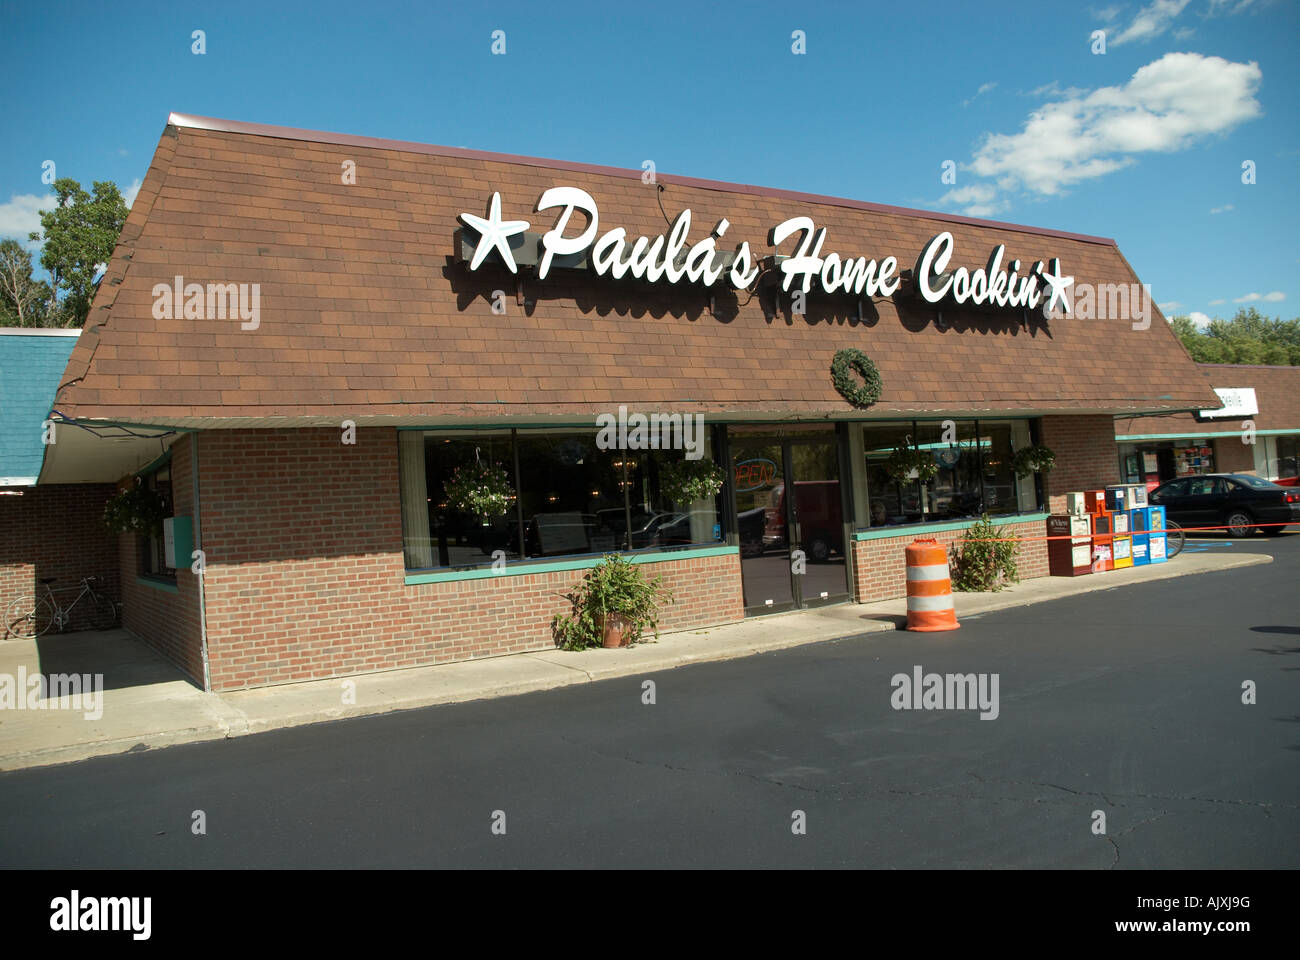 Paula s Home Cooking Restaurant in Bellville Michigan - Stock Image